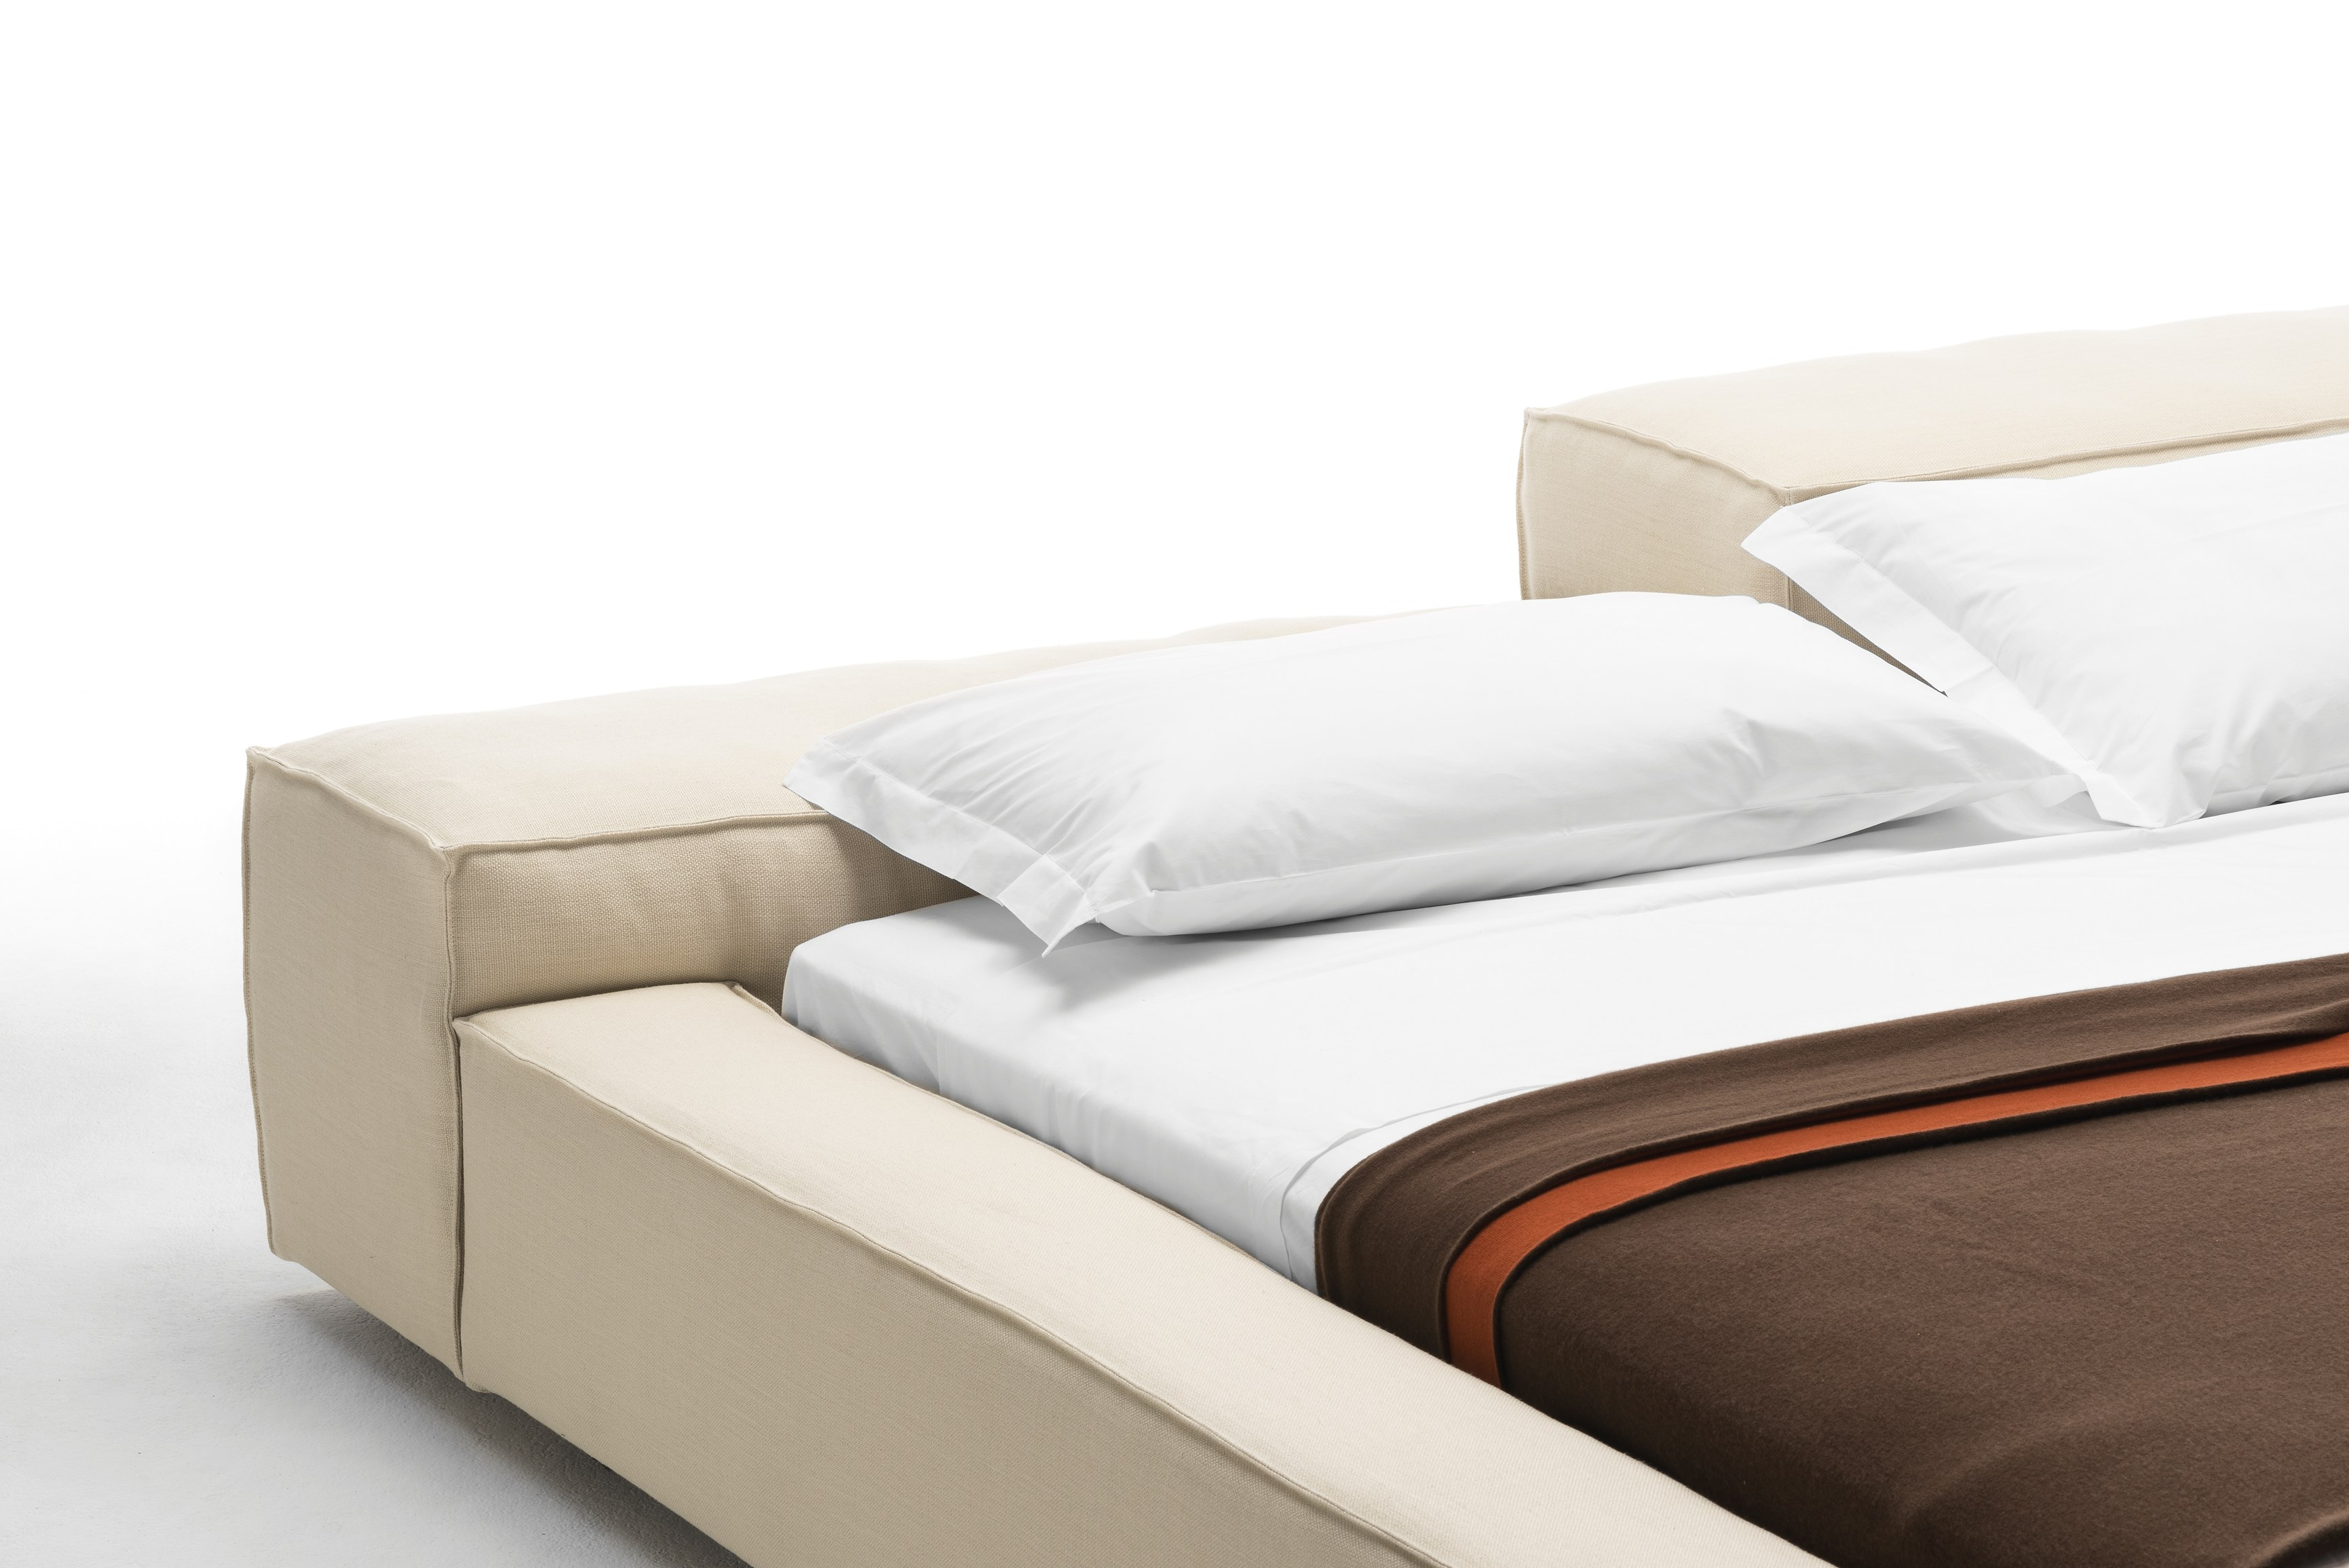 EXTRASOFT Bed by Living Divani design Piero Lissoni